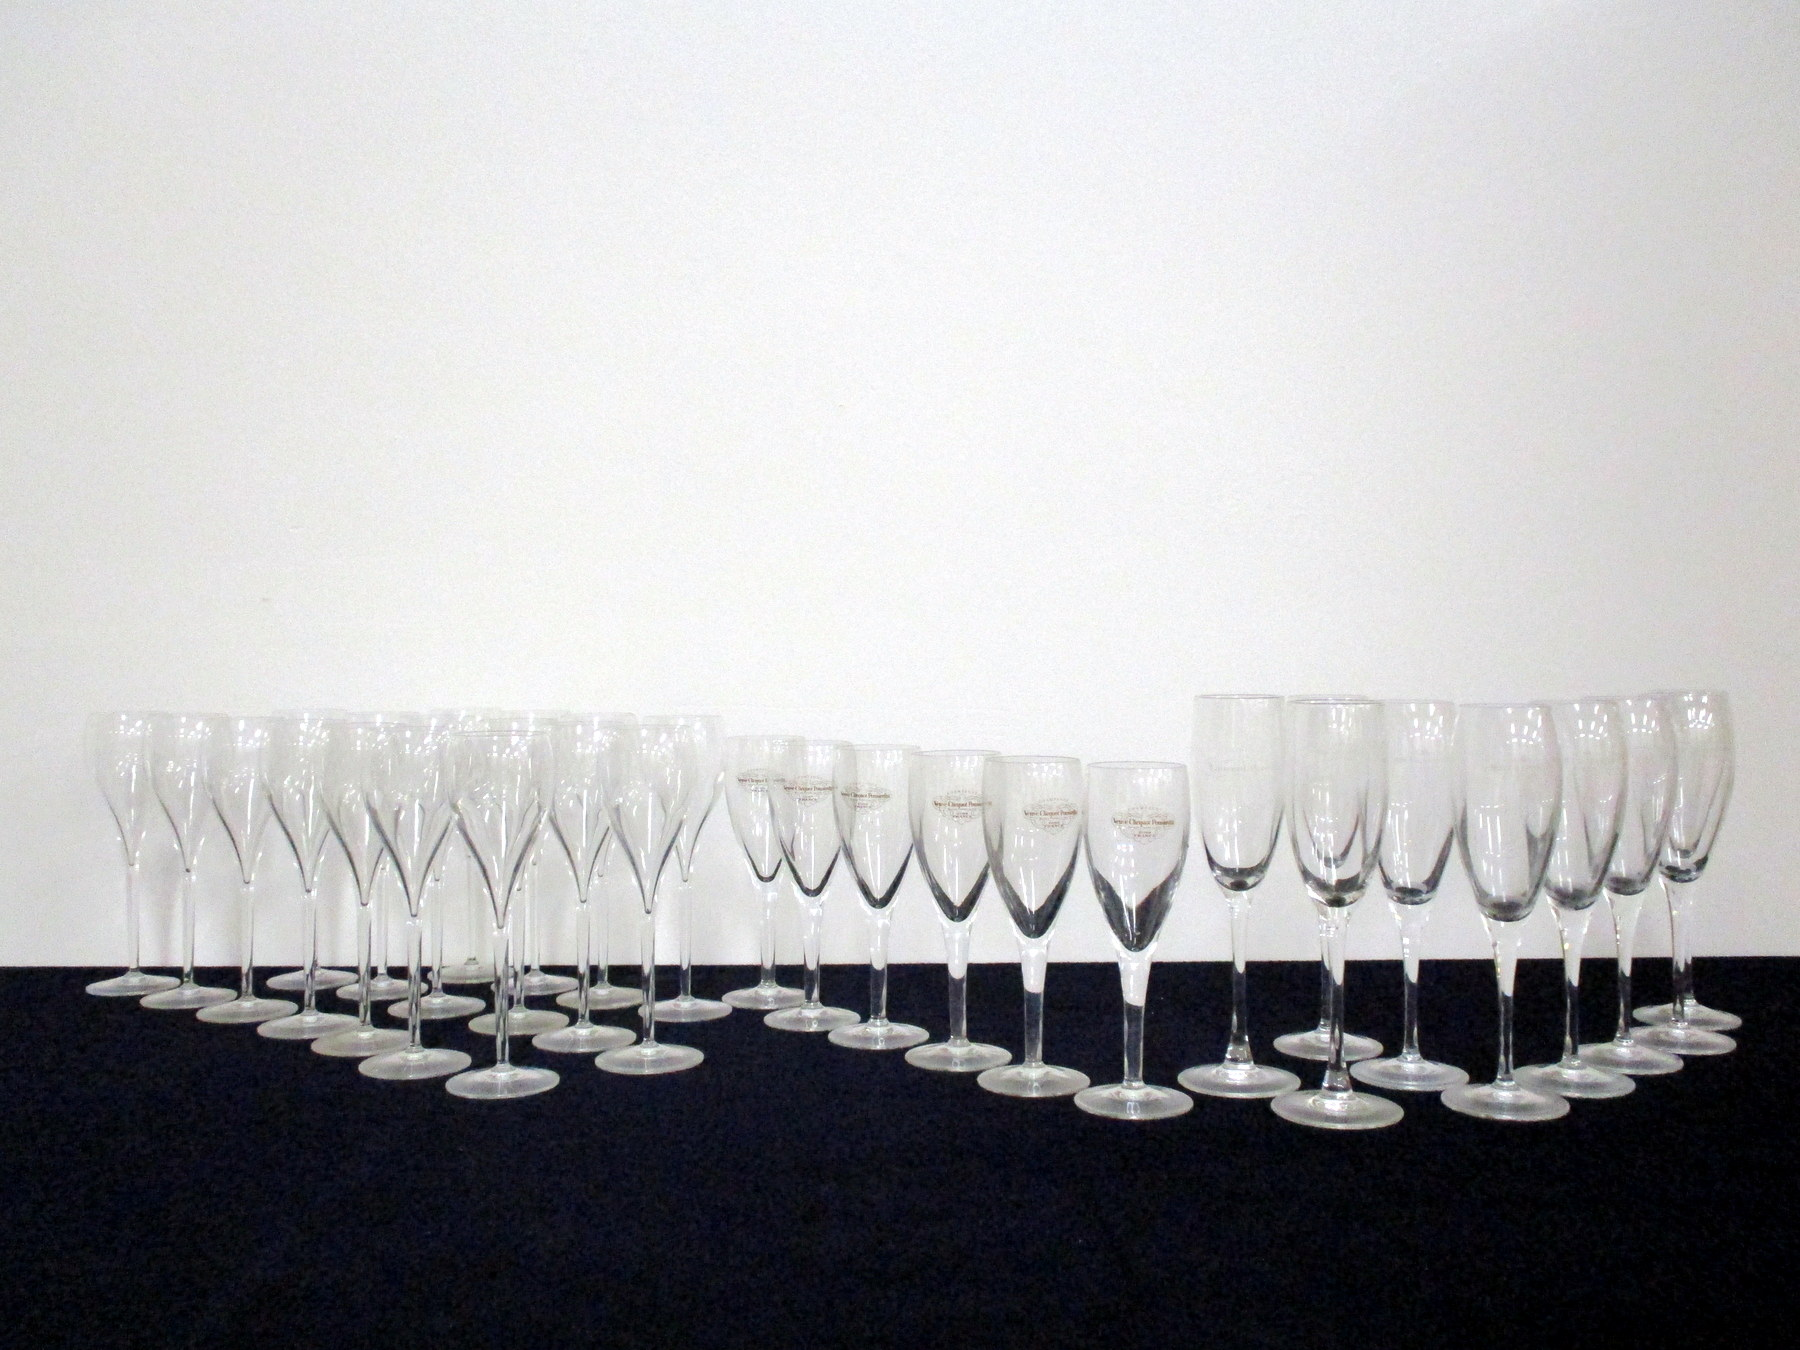 A collection of 32 Champagne Flutes including Moet et Chandon and Joseph Perrier